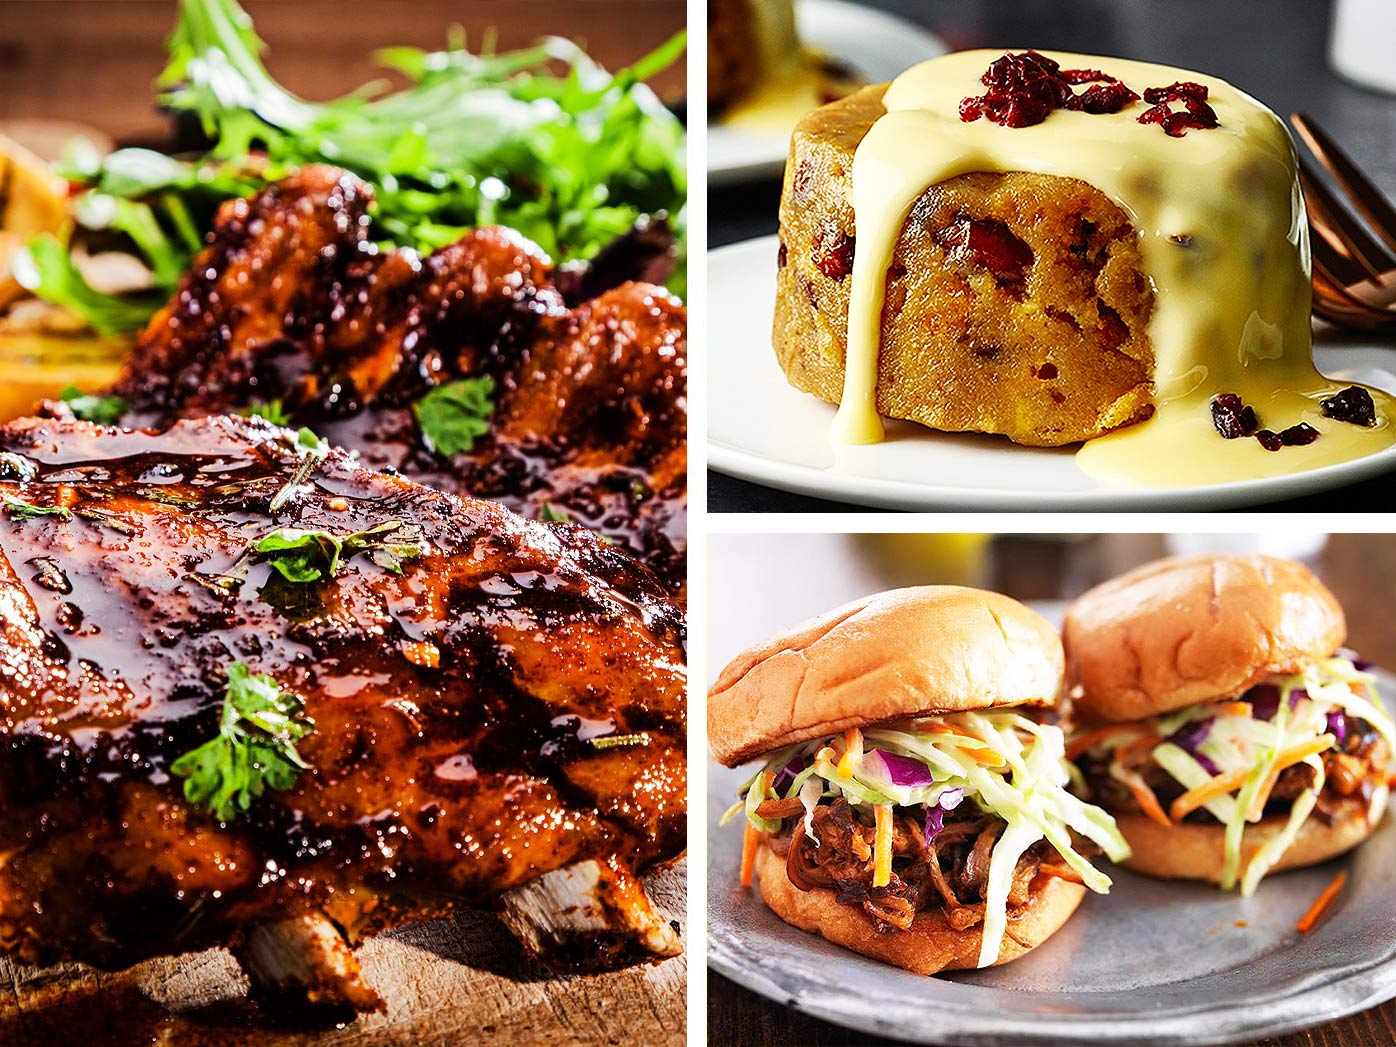 Lamb riblets, tomato and chipotle pork sliders and more